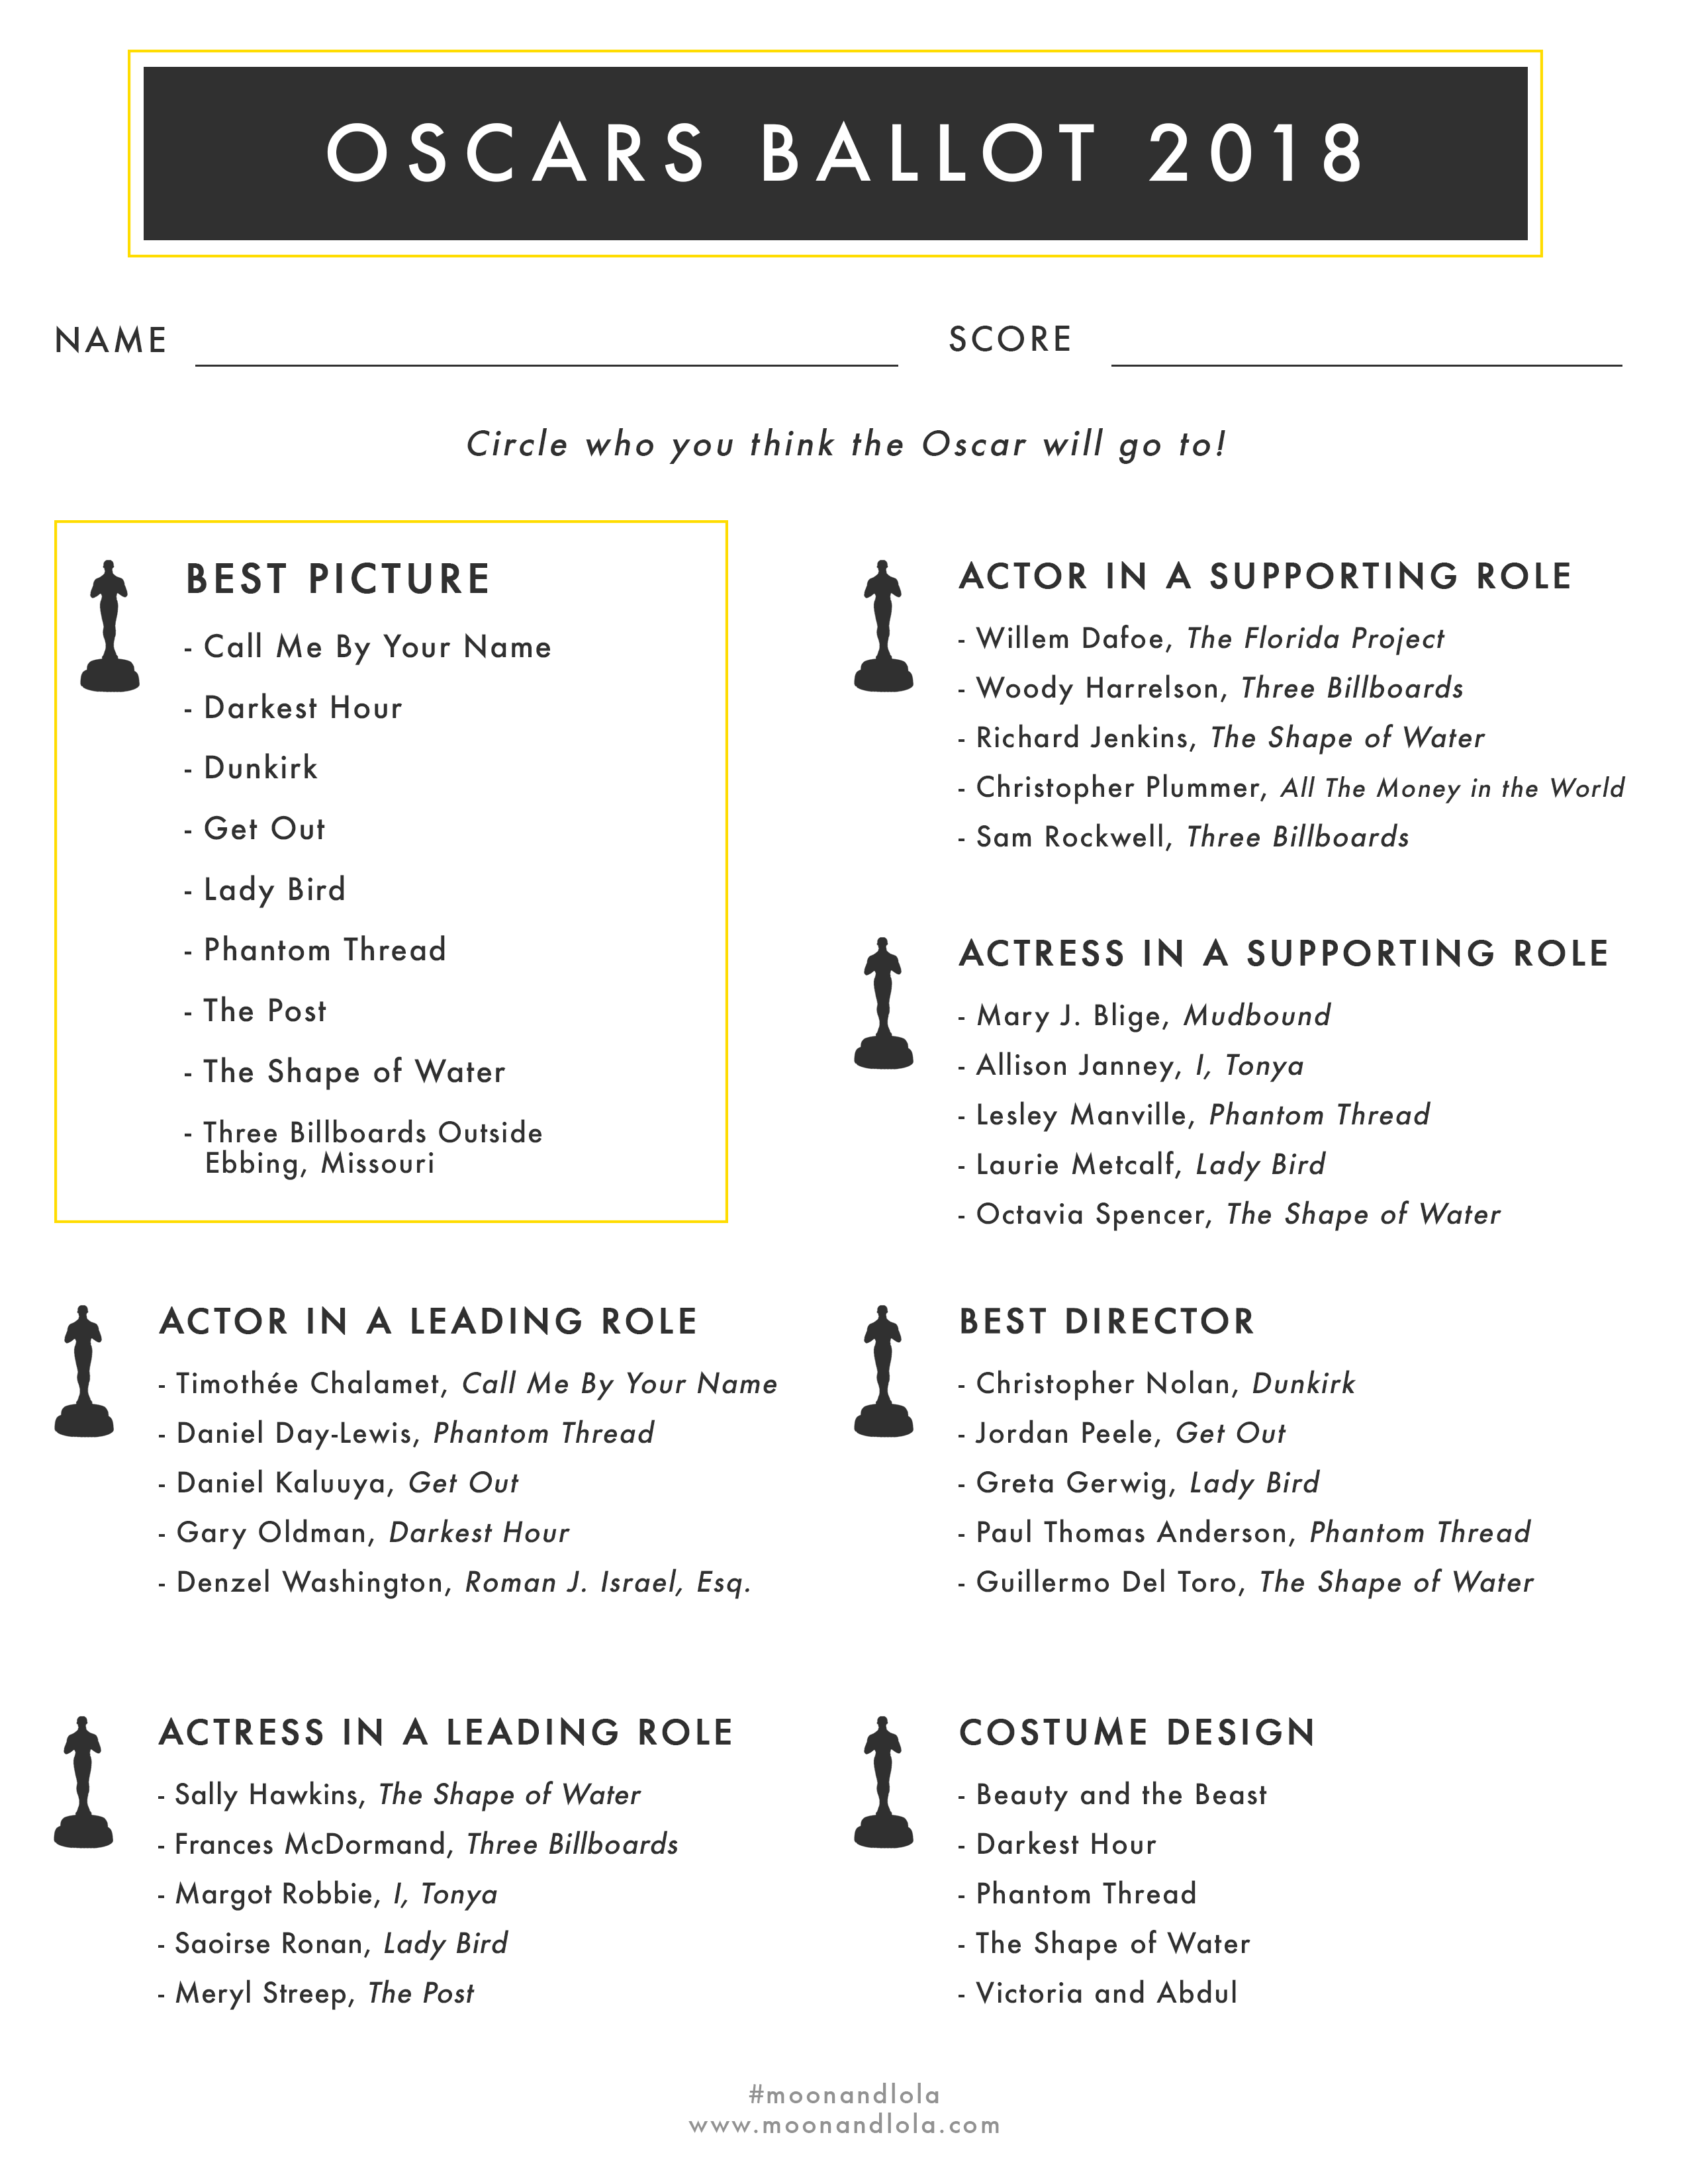 Oscars 2018 Download - Academy Awards Ballot from Moon and Lola